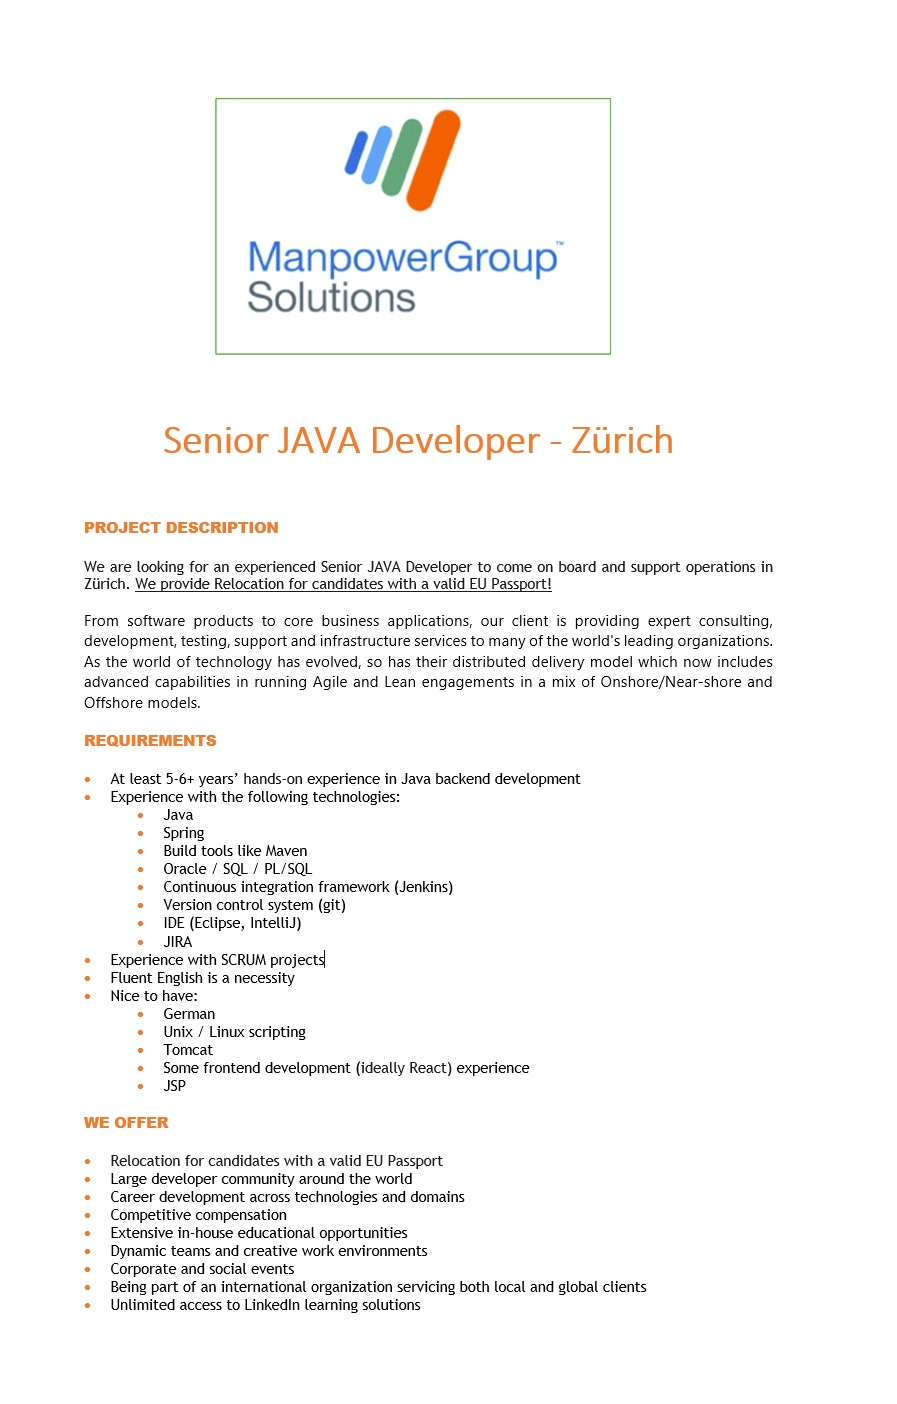 Senior JAVA Developer to come on board and support operations in Zürich. From software products to core business applications, our client is providing expert consulting, development, testing, support and infrastructure services to many of the world's leading organizations. As the world of technology has evolved, so has their distributed delivery model which now includes advanced capabilities in running Agile and Lean engagements in a mix of Onshore/Near-shore and Offshore models. REQUIREMENTS - At least 5-6+ years' hands-on experience in Java backend development - Experience with the following technologies: - Java - Spring - Build tools like Maven - Oracle / SQL / PL/SQL - Continuous integration framework (Jenkins) - Version control system (git) - IDE (Eclipse, IntelliJ) - JIRA - Experience with SCRUM projects - Fluent English is a necessity - Nice to have: - German - Unix / Linux scripting - Tomcat - Some frontend development (ideally React) experience - JSP WE OFFER - Large developer community around the world - Career development across technologies and domains - Competitive compensation - Extensive in-house educational opportunities - Dynamic teams and creative work environments - Corporate and social events - Being part of an international organization servicing both local and global clients - Unlimited access to LinkedIn learning solutions